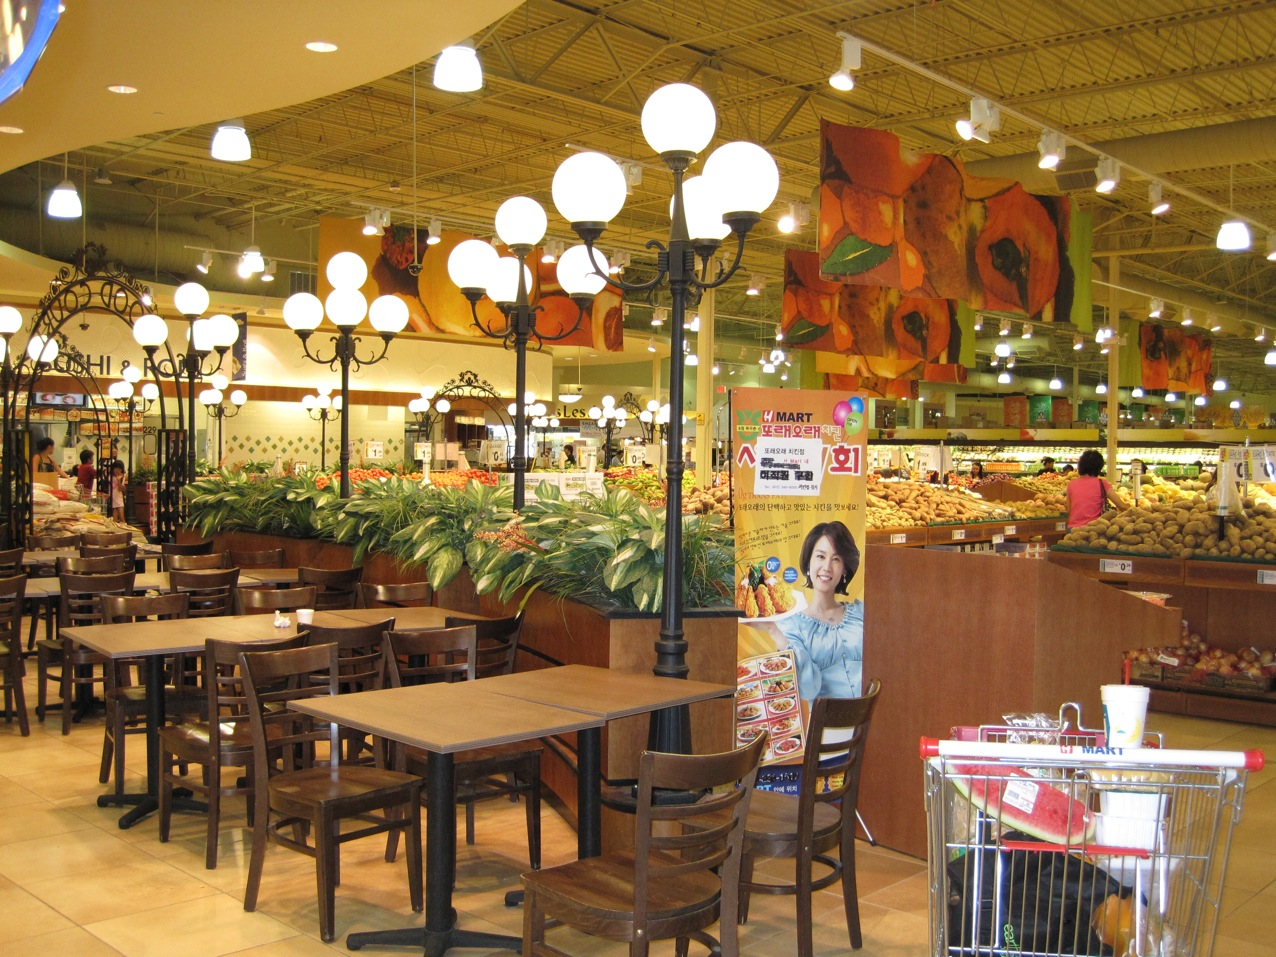 kimchi department (I don't know how else to call it), food court,